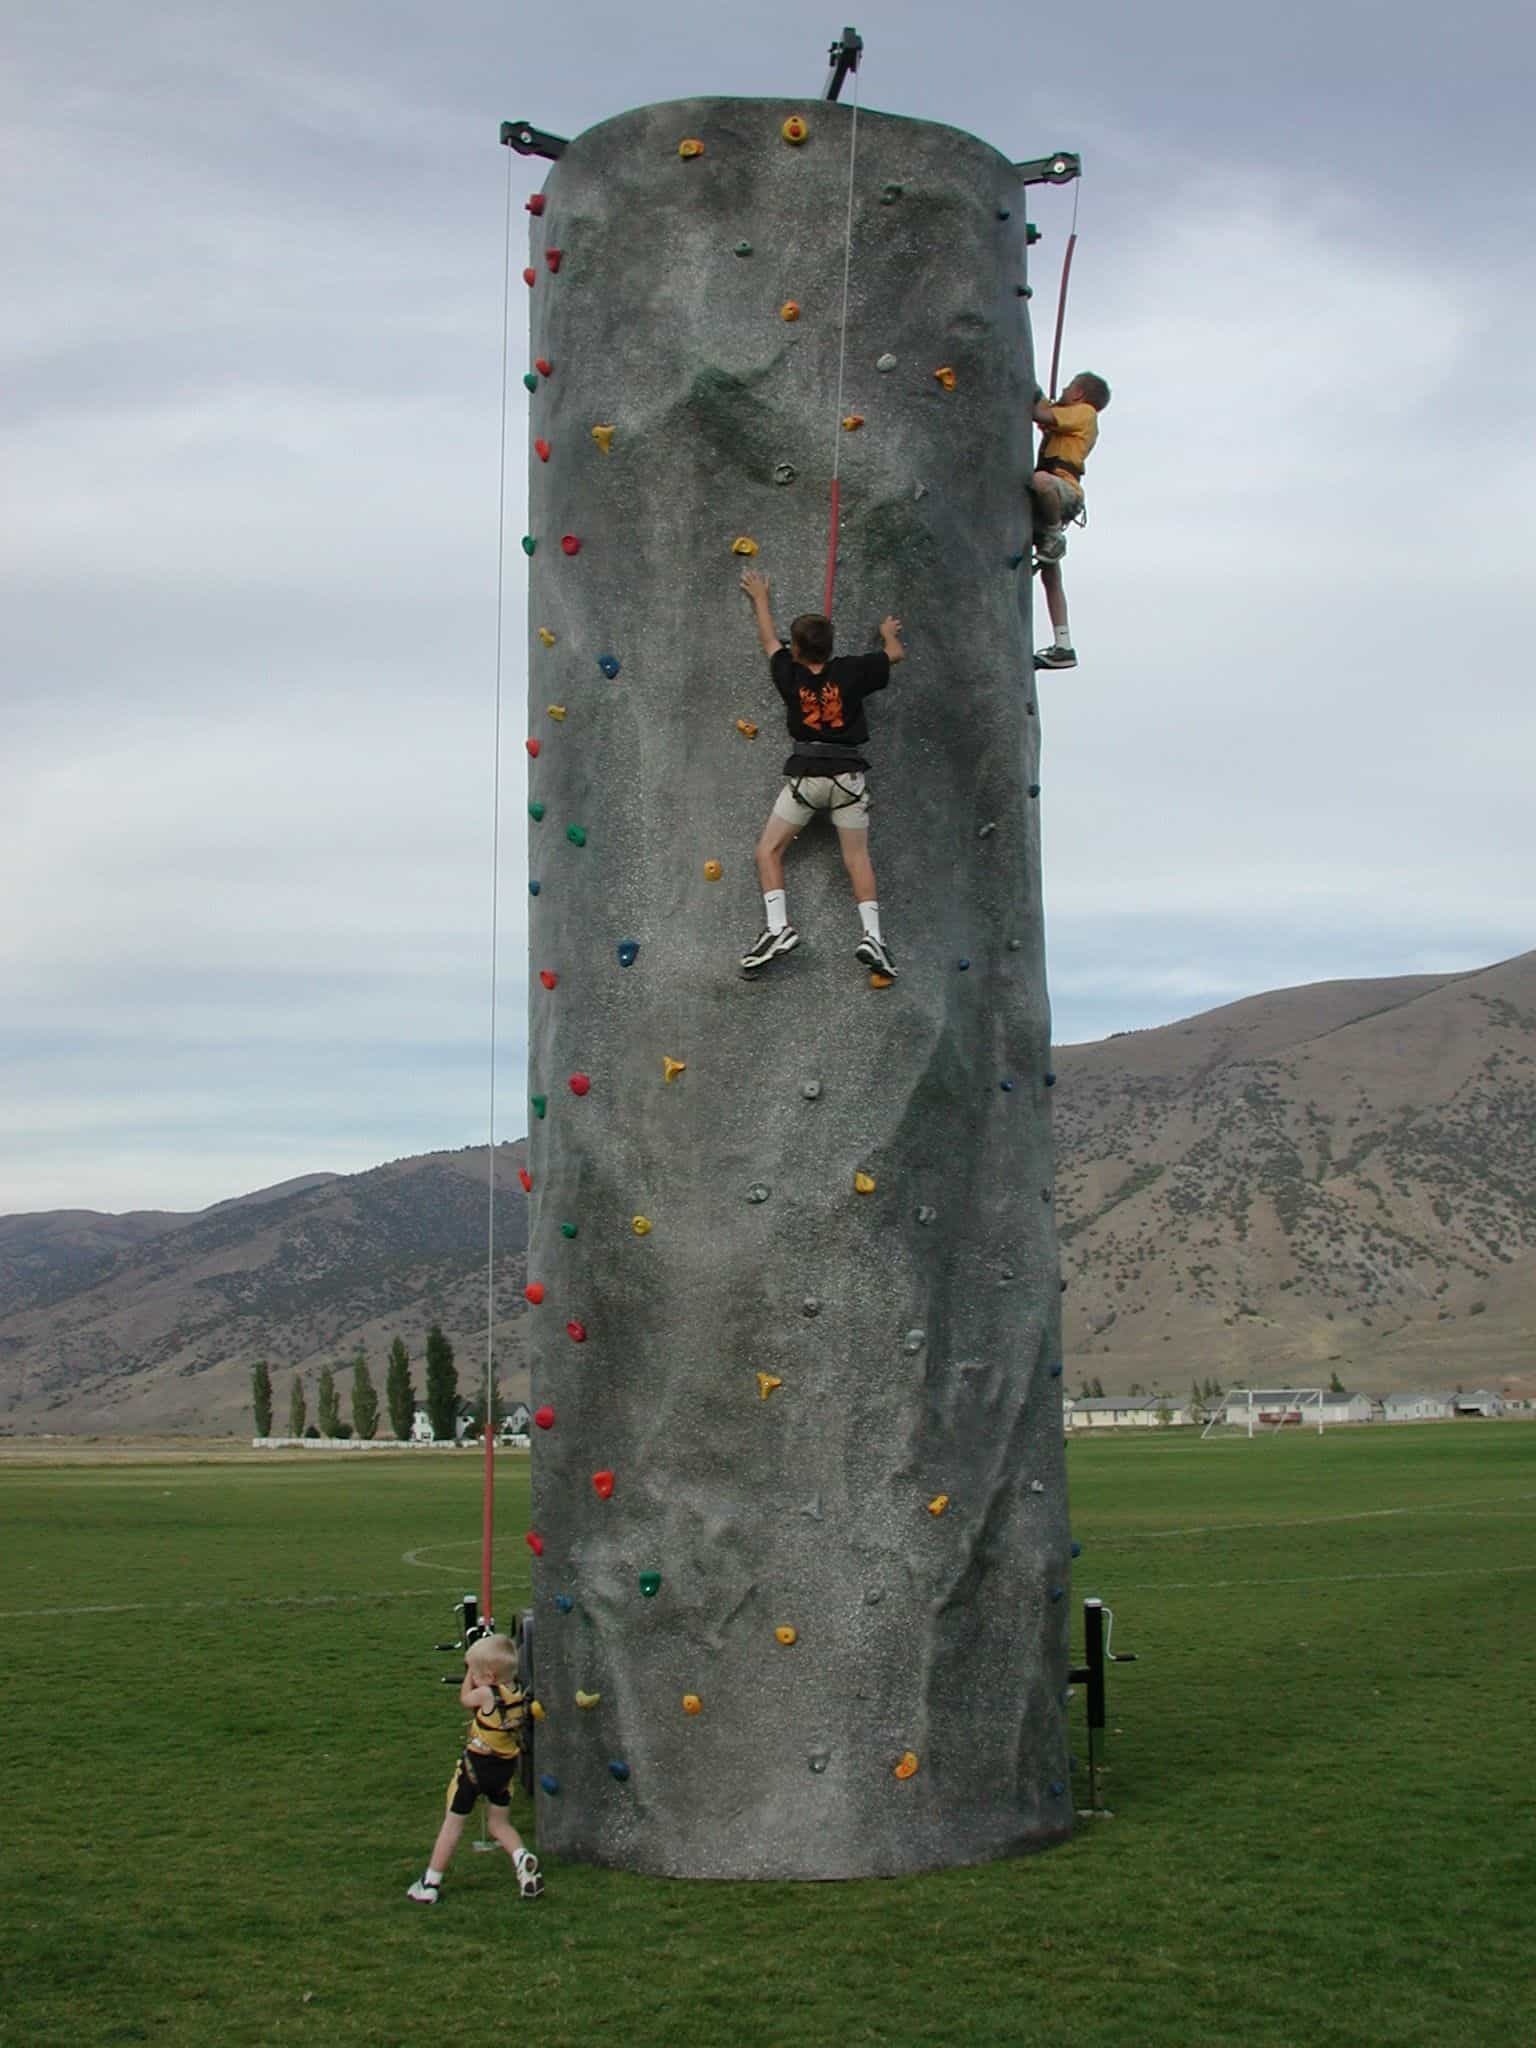 24 FT Rock Climbing Wall | Mobile Rock Wall Rentals | Best Prices